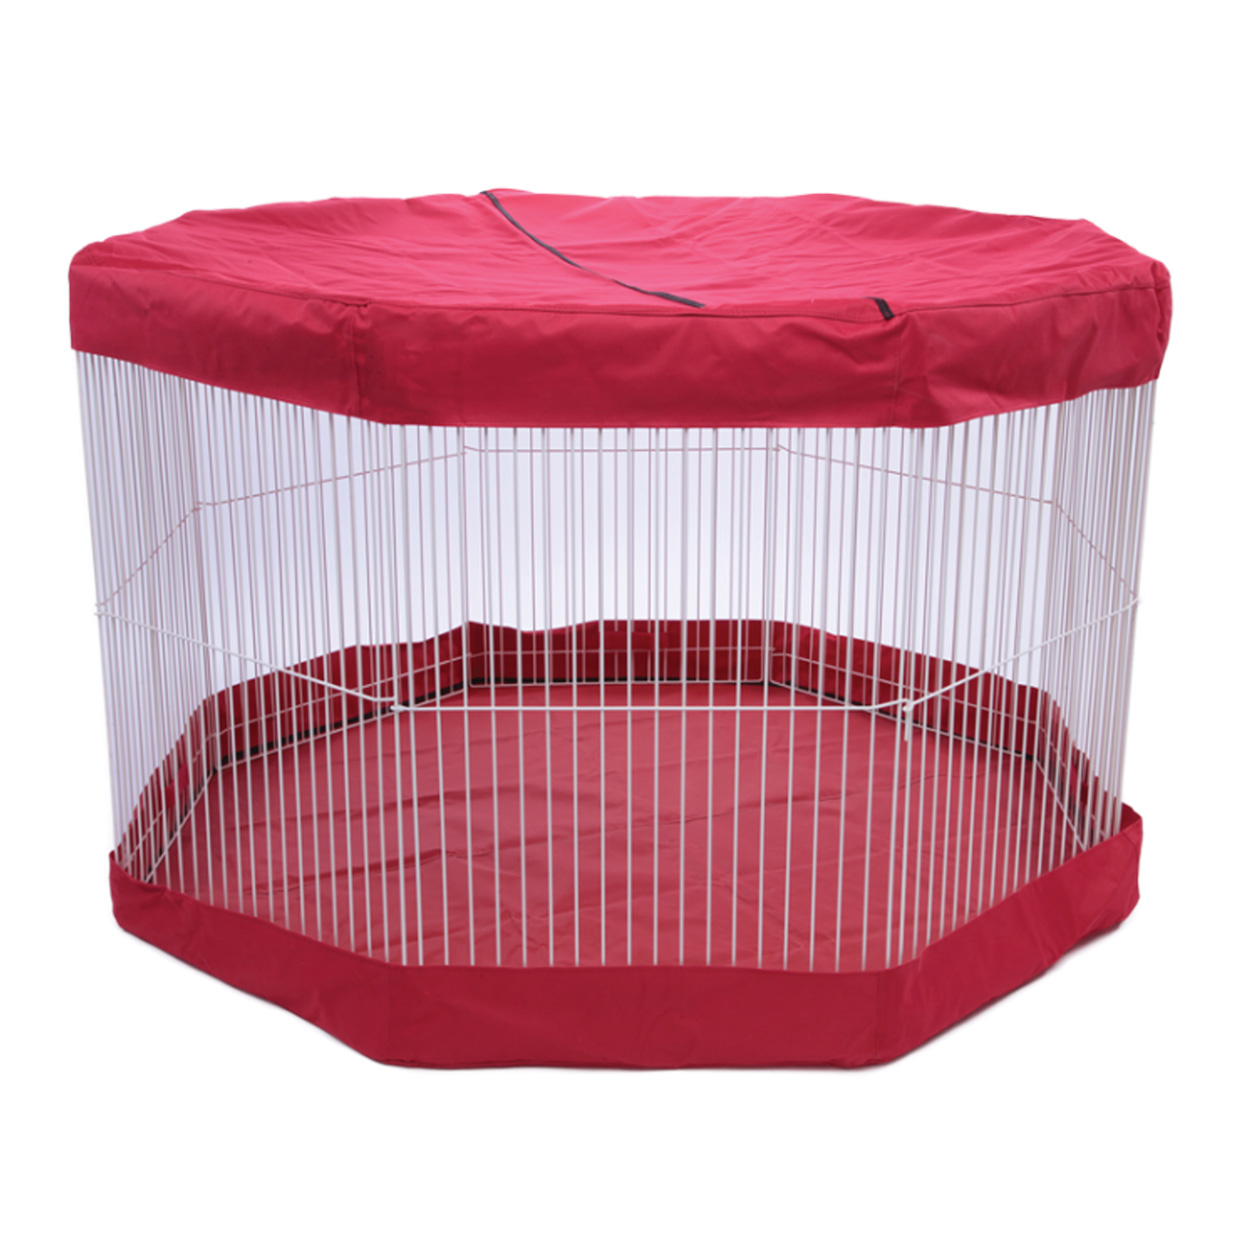 Ware Small Animal Playpen Small Pet Playpen With Mat